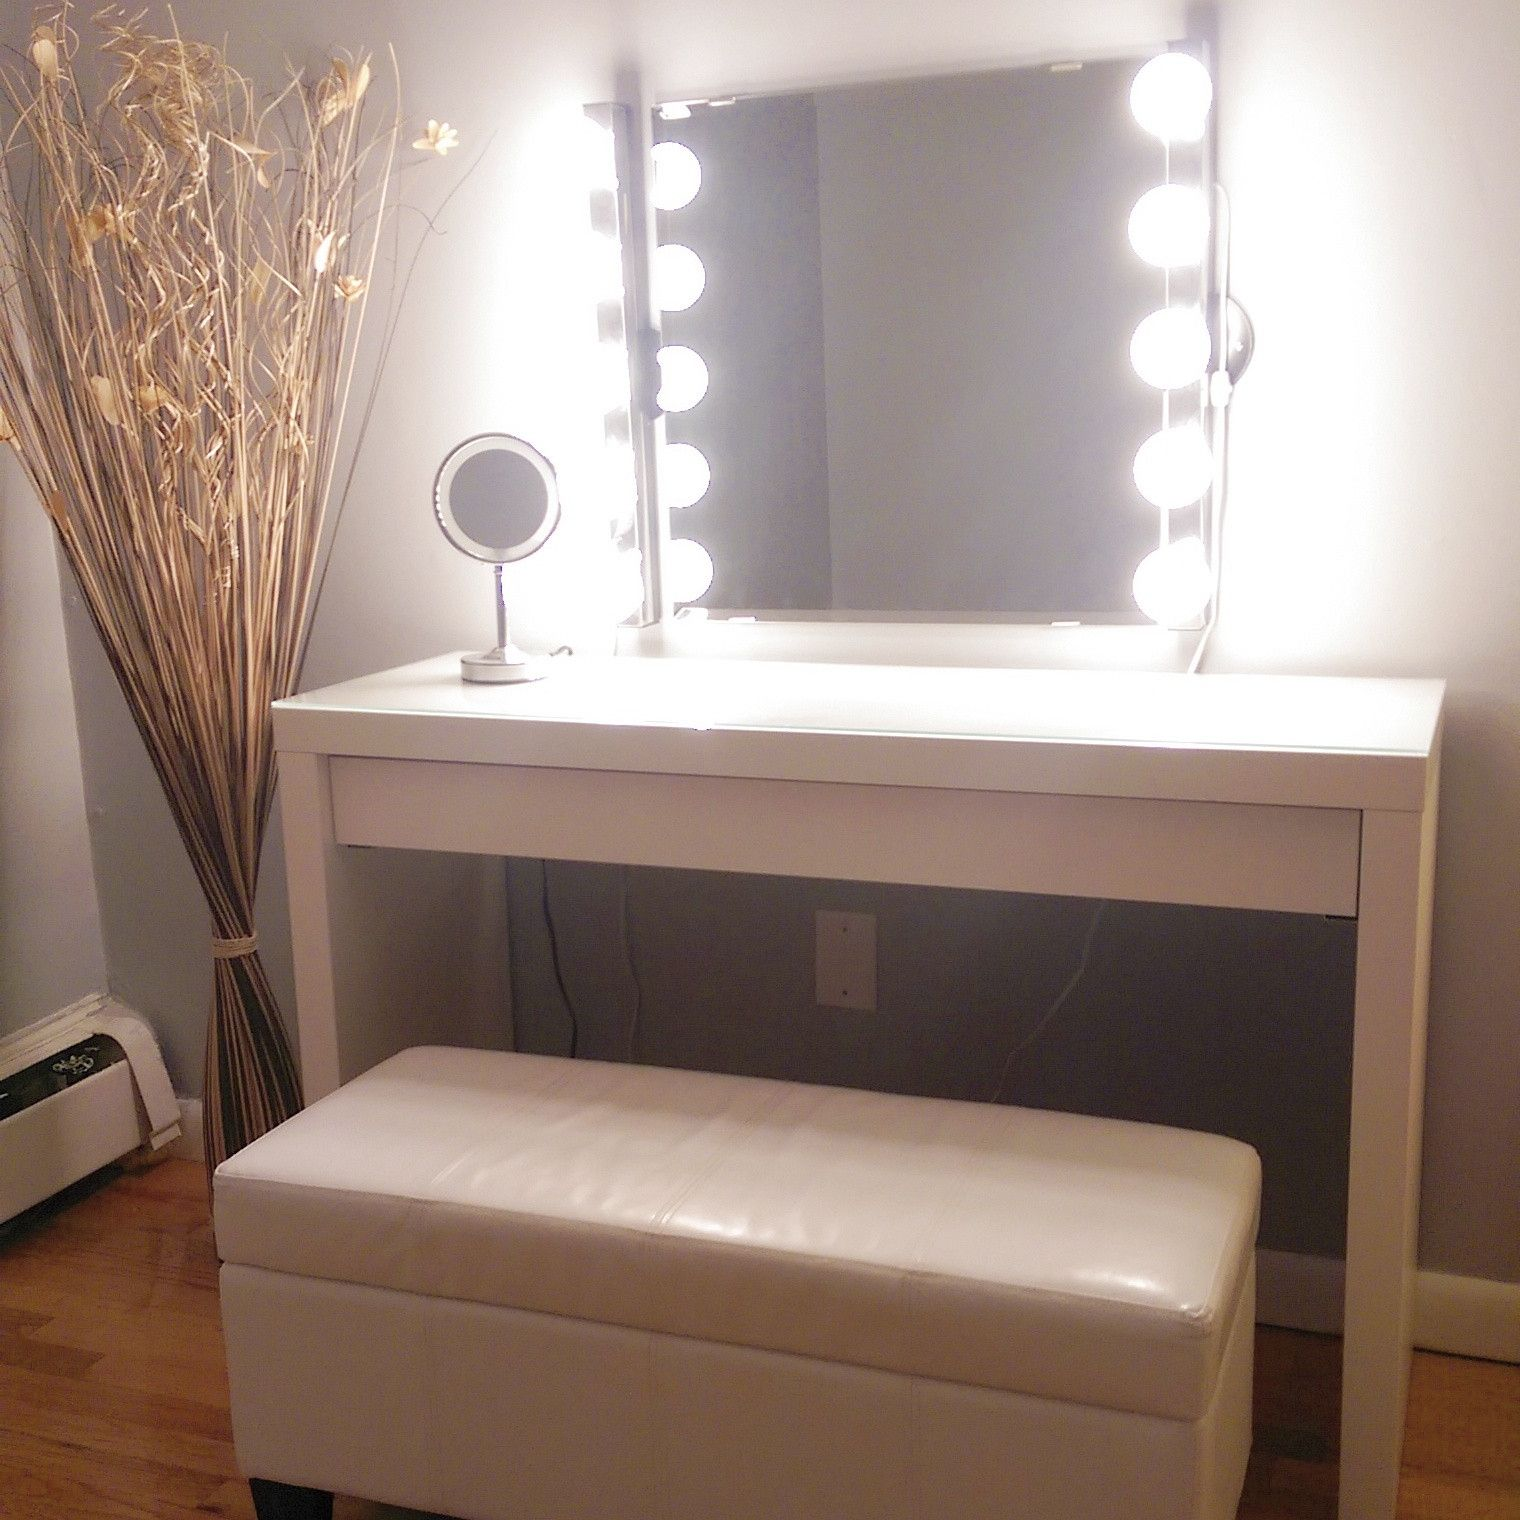 Mirrors With Light Bulbs Around Them Bedroom Mirror With Lights Mirror Wall Bedroom Vanity Desk With Lights